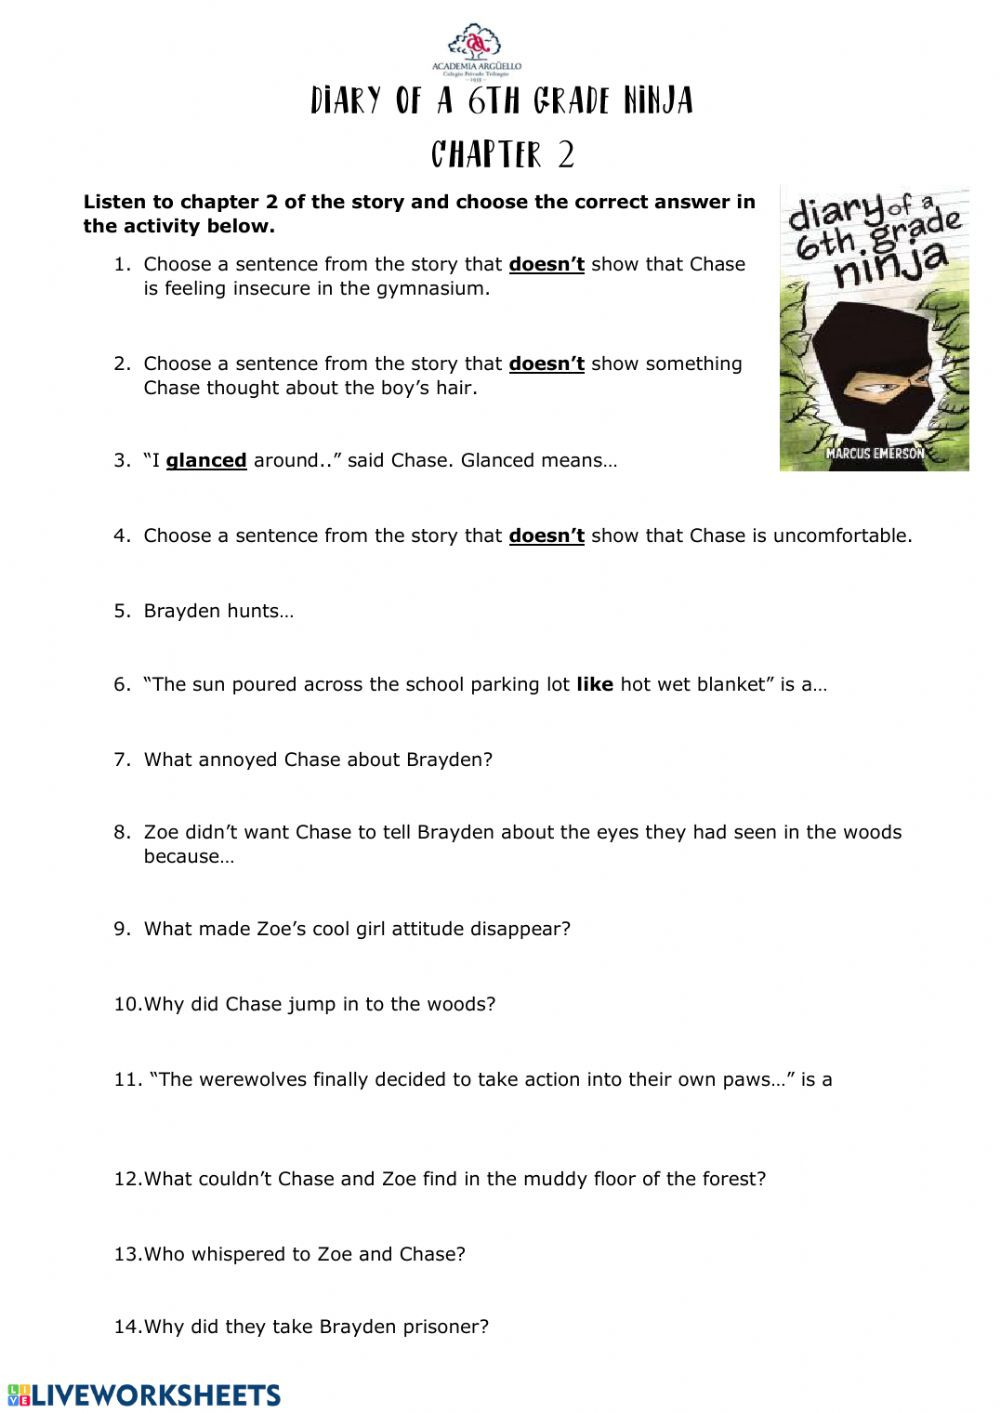 Middle Ages Worksheets 6th Grade Diary Of A 6th Grade Ninja Chapter 2 Interactive Worksheet